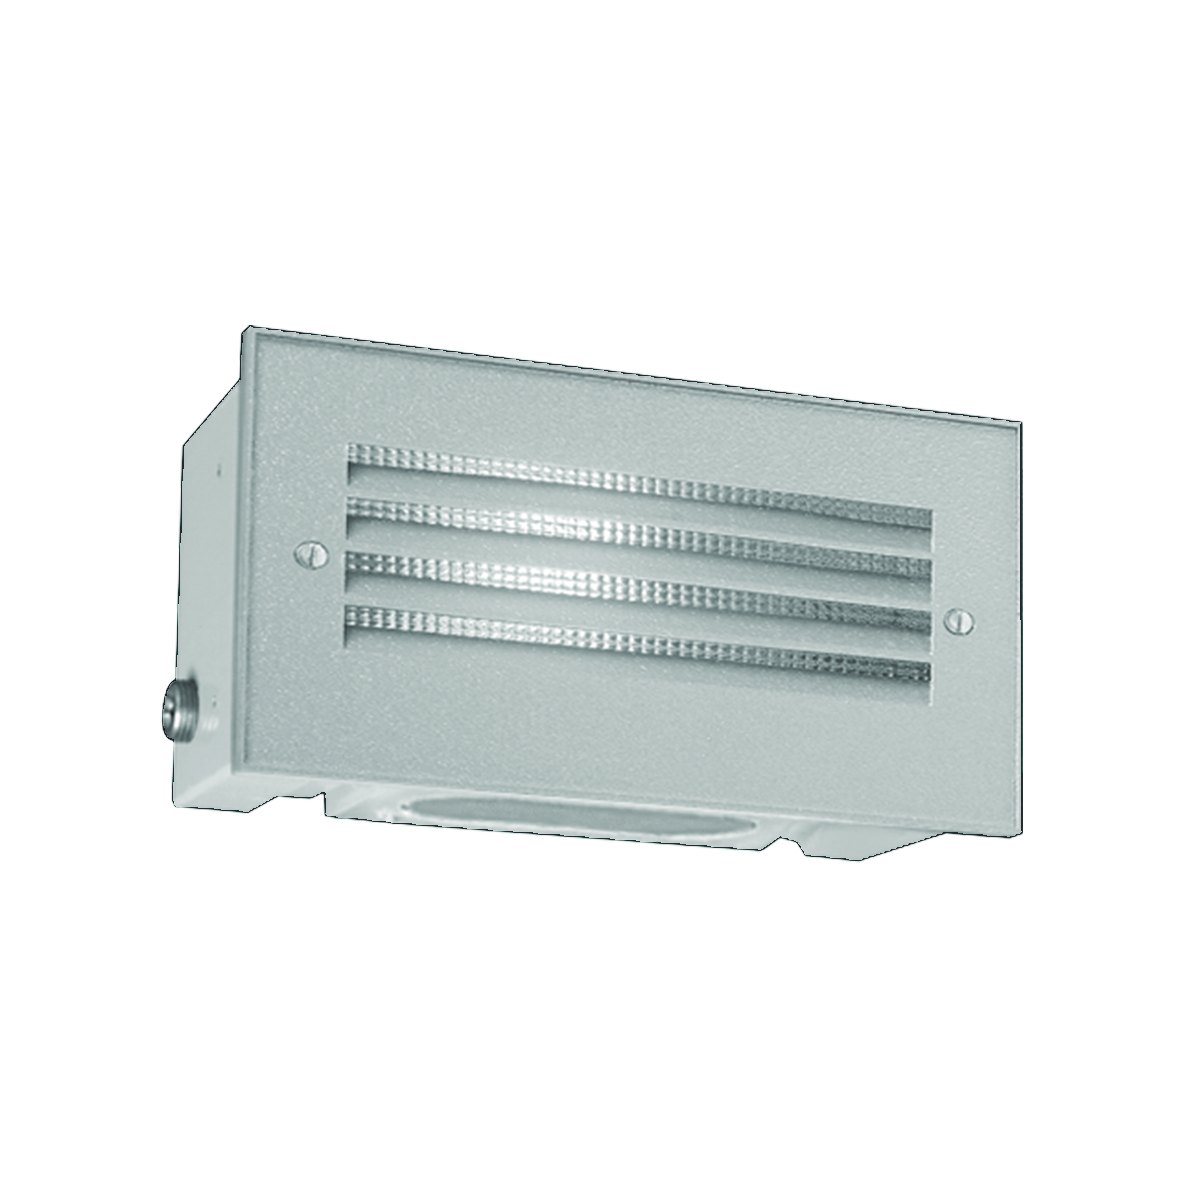 Hubbell Prescolite,ALE-WH,Prescolite ALE-WH Non-IC Rated Recessed Step Light, A19 Lamp, 120 VAC, Die-Cast Aluminum Housing